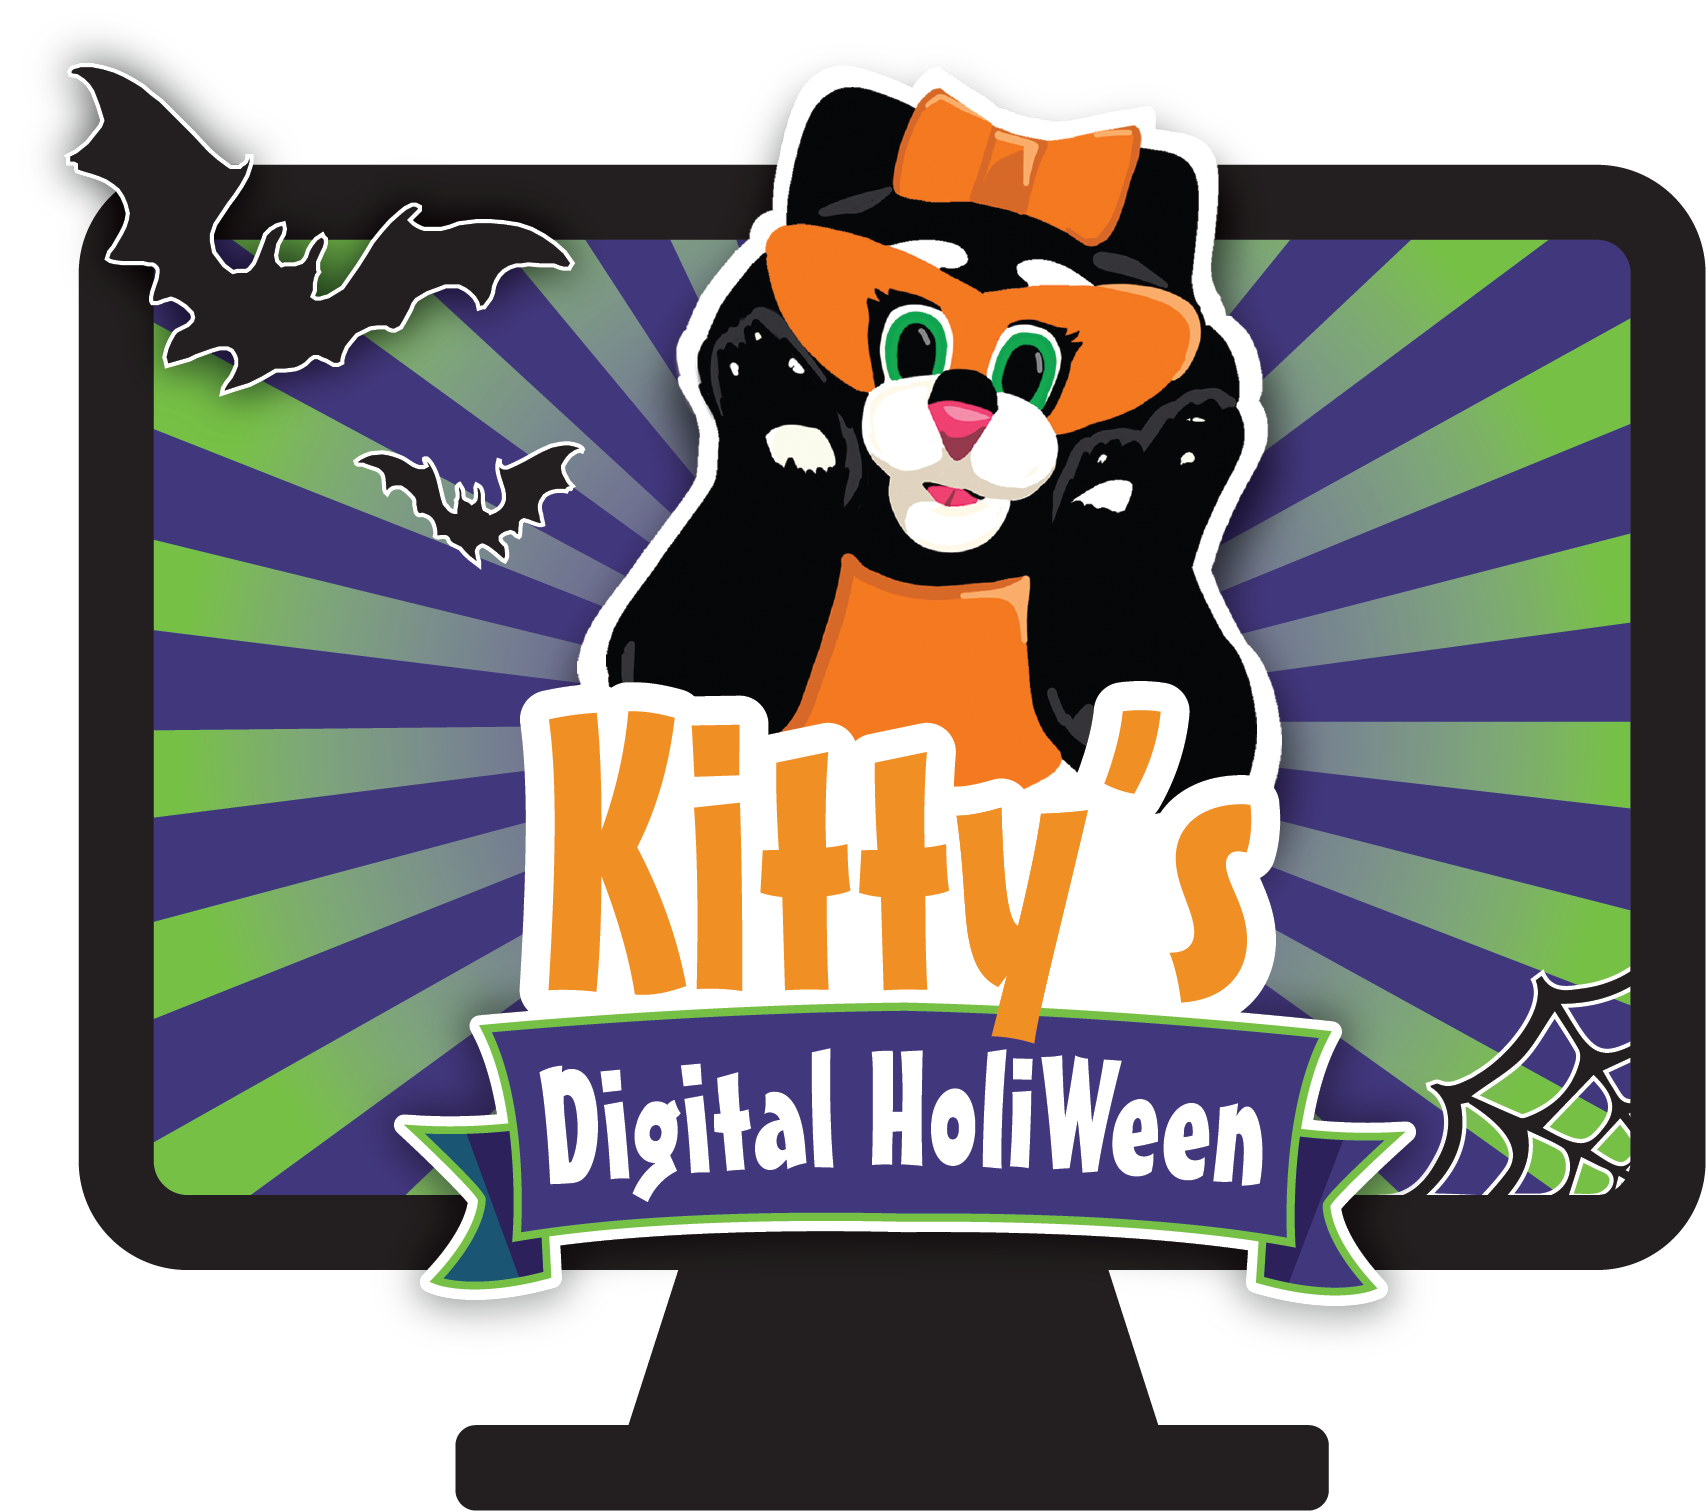 Kitty's Digital HoliWeen_300.png